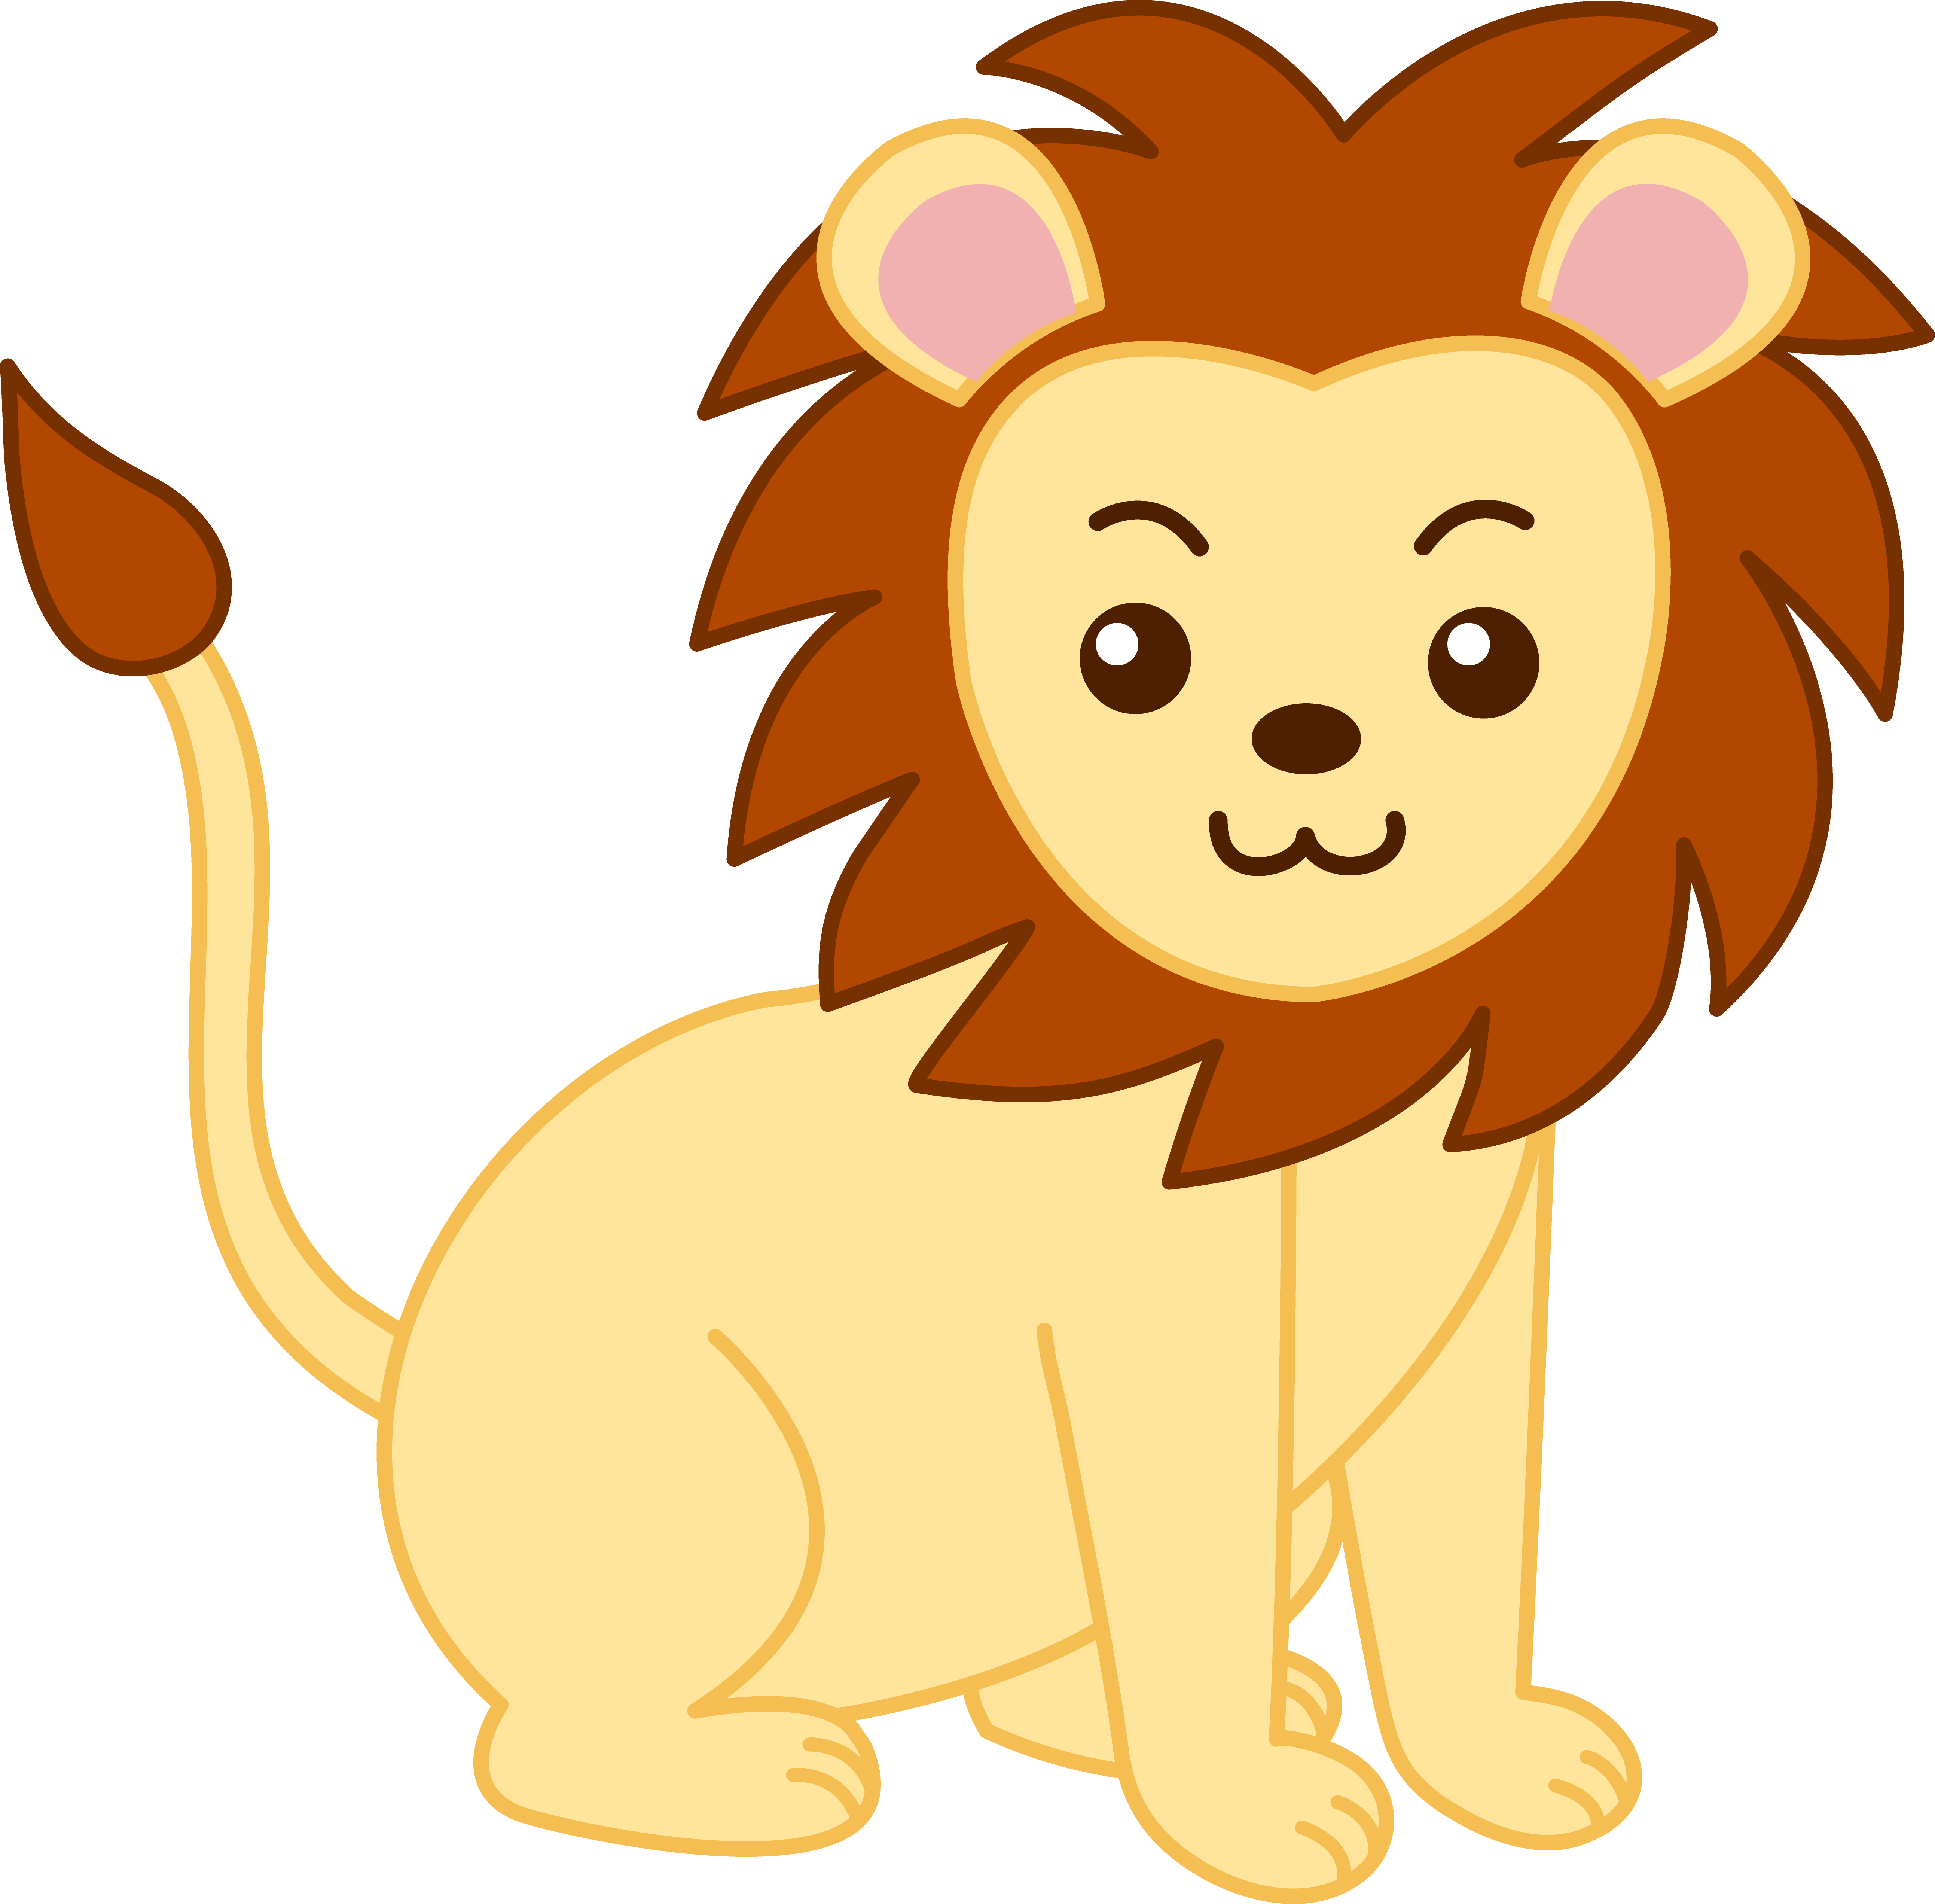 zoo animals clipart free large images [ 5171 x 5087 Pixel ]